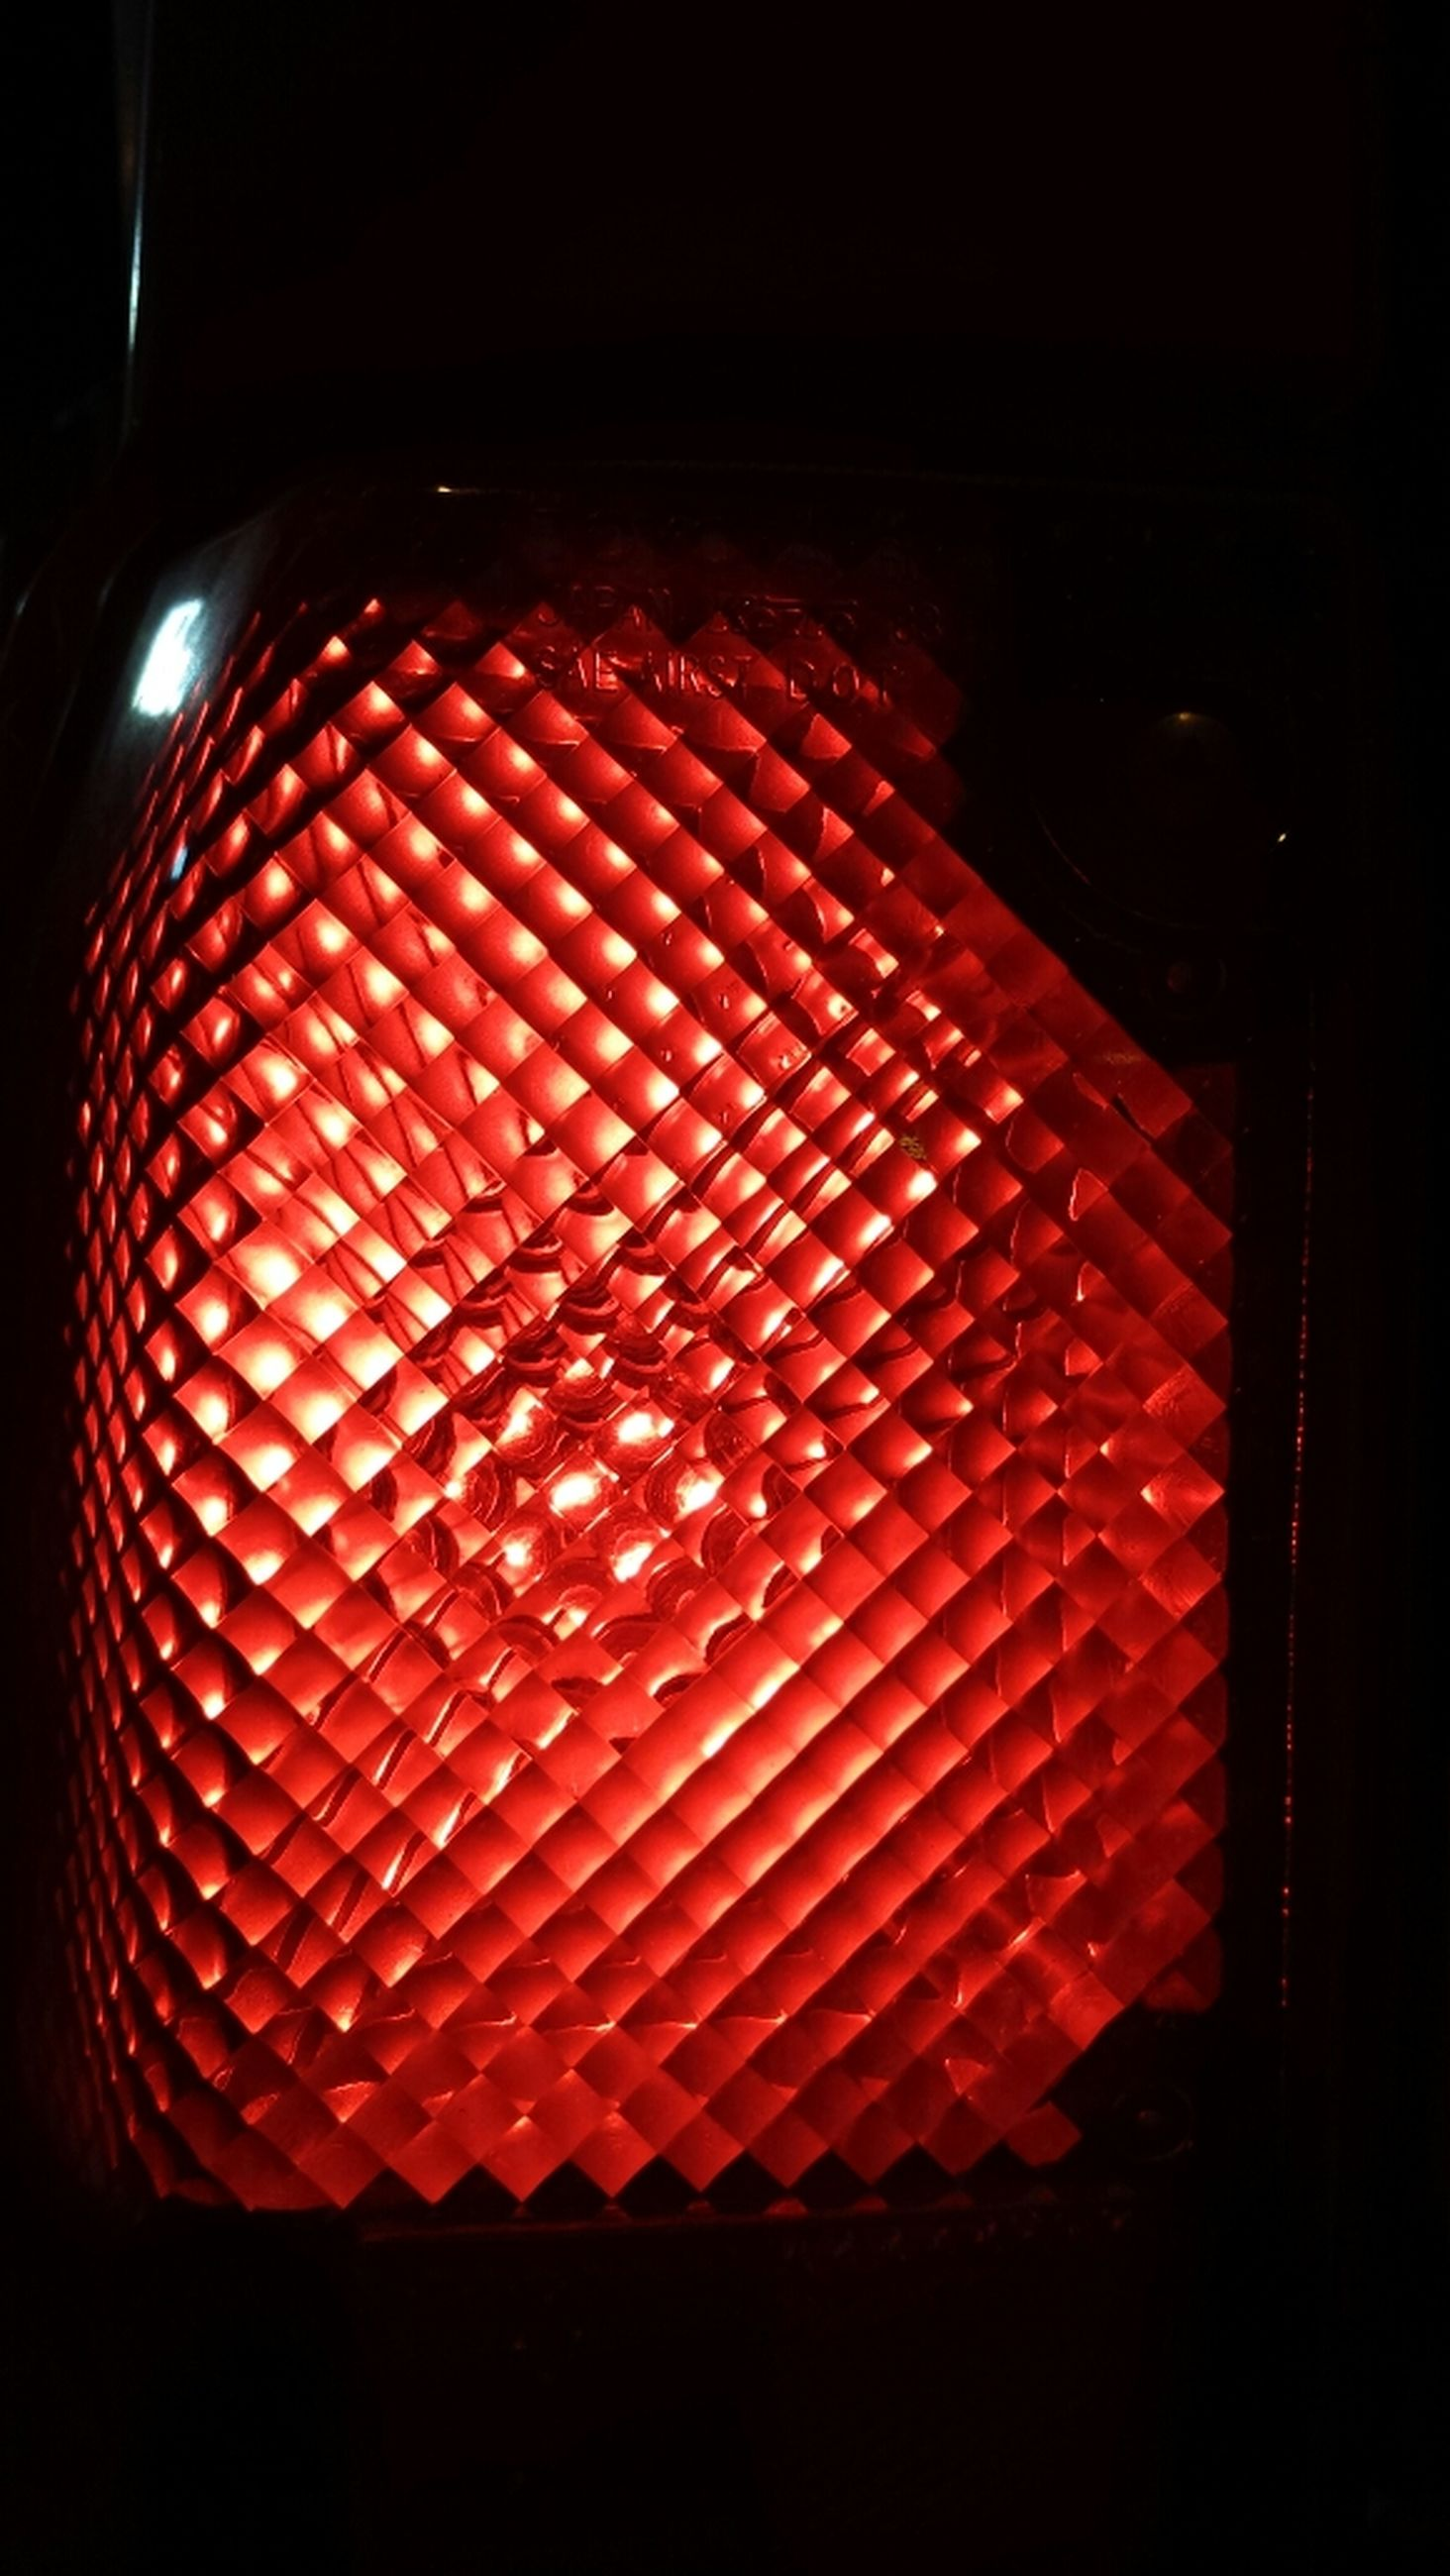 indoors, illuminated, close-up, red, glass - material, pattern, dark, still life, no people, window, night, lighting equipment, hanging, home interior, design, multi colored, transparent, shape, in a row, light - natural phenomenon